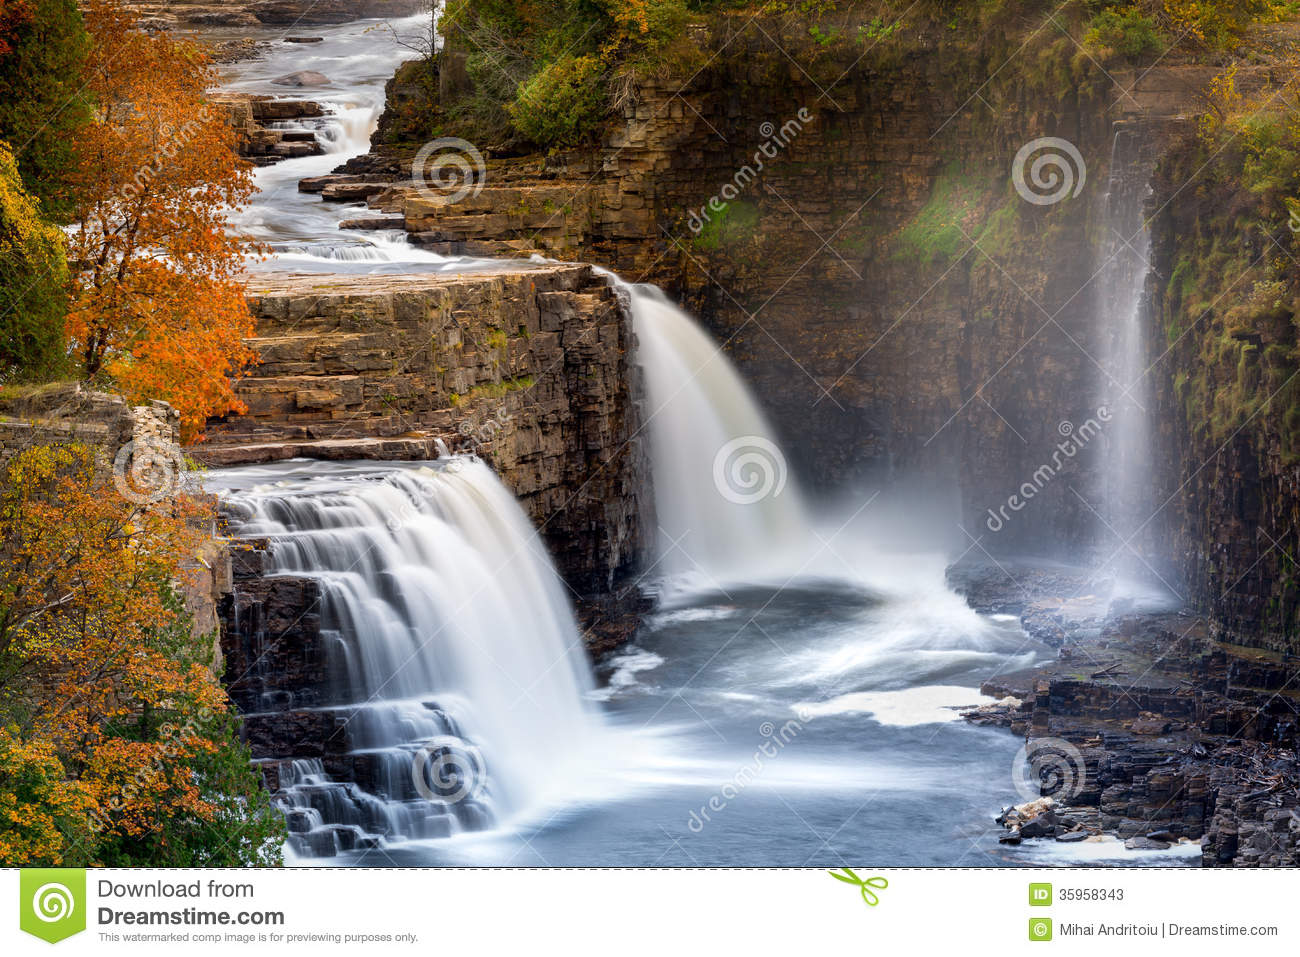 Ausable Chasm Waterfall, Adirondack mountains, Upstate New York. By Wallpaper